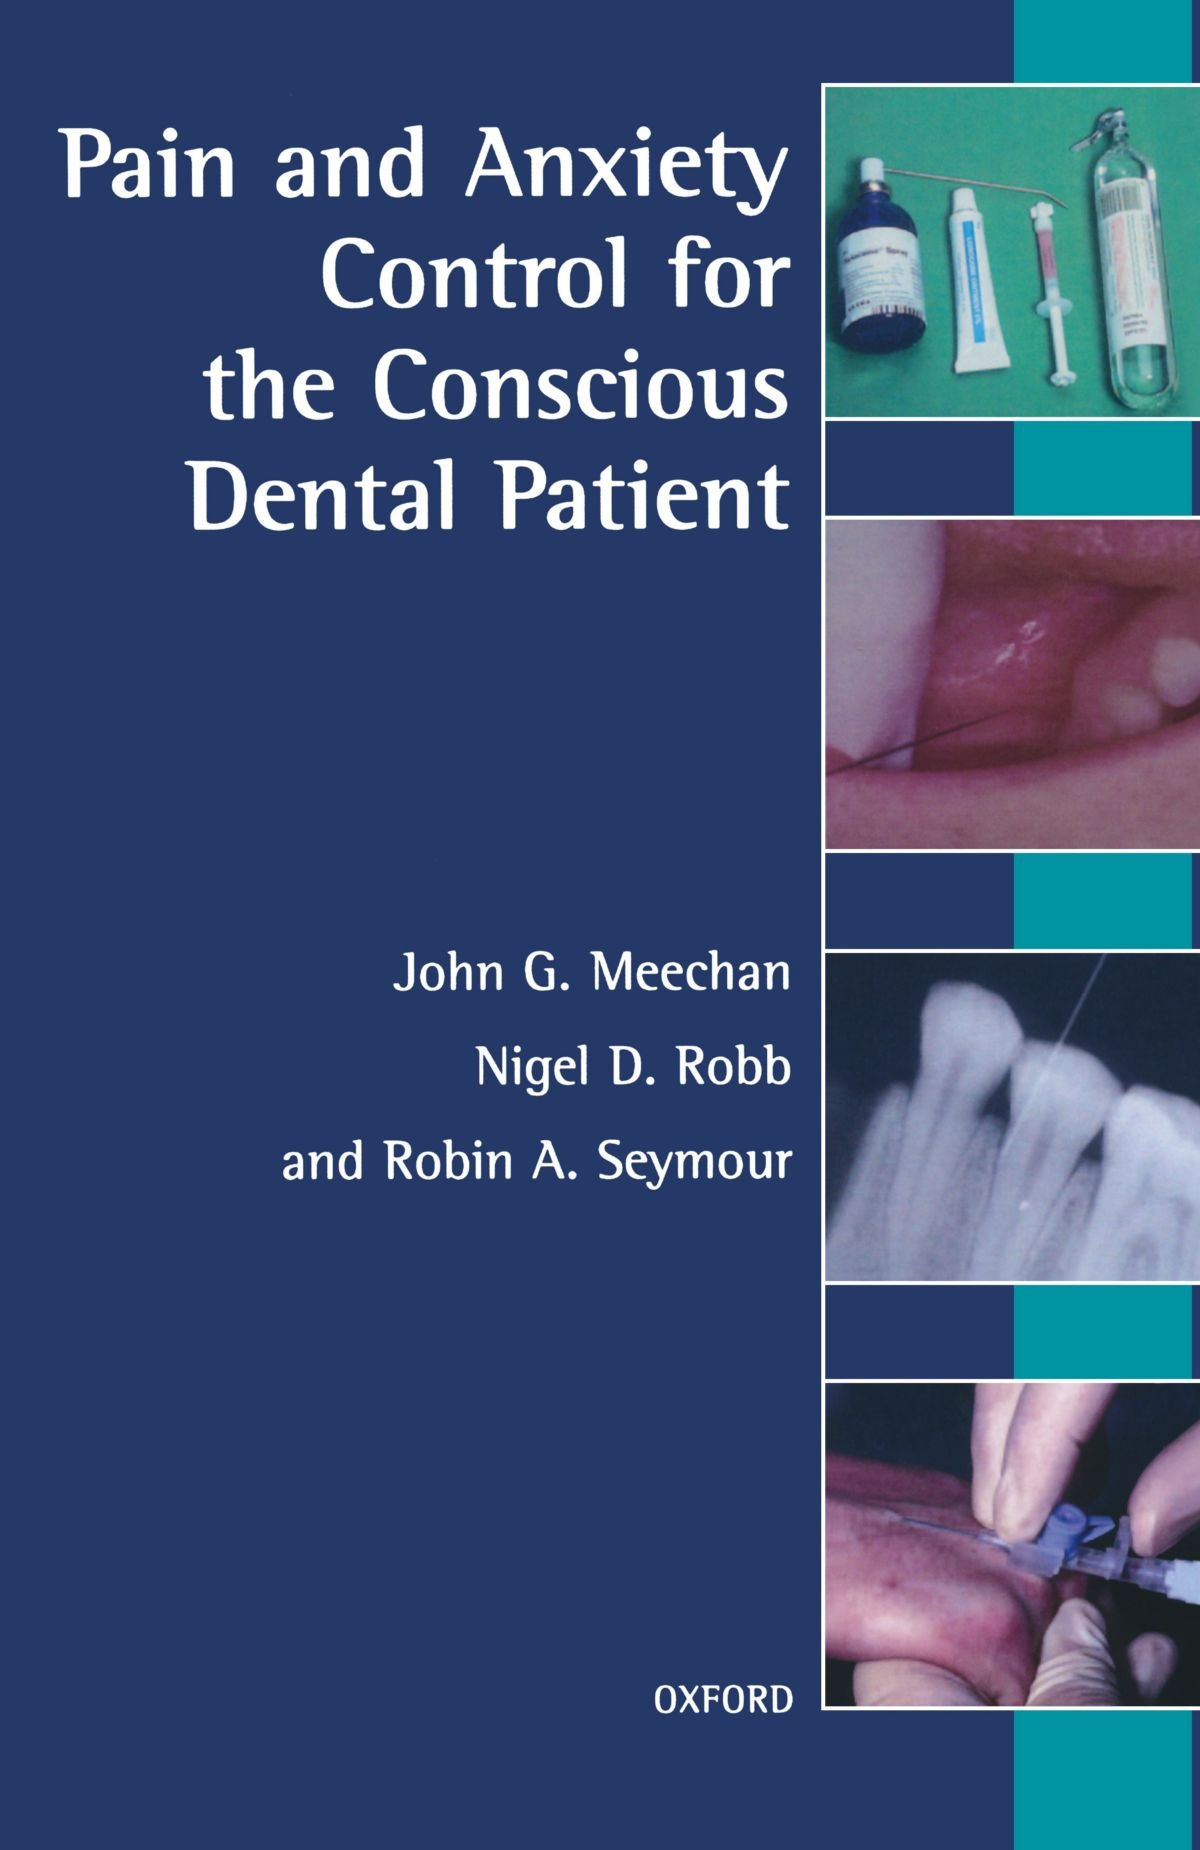 Pain and Anxiety Control for the Conscious Dental Patient by Oxford University Press